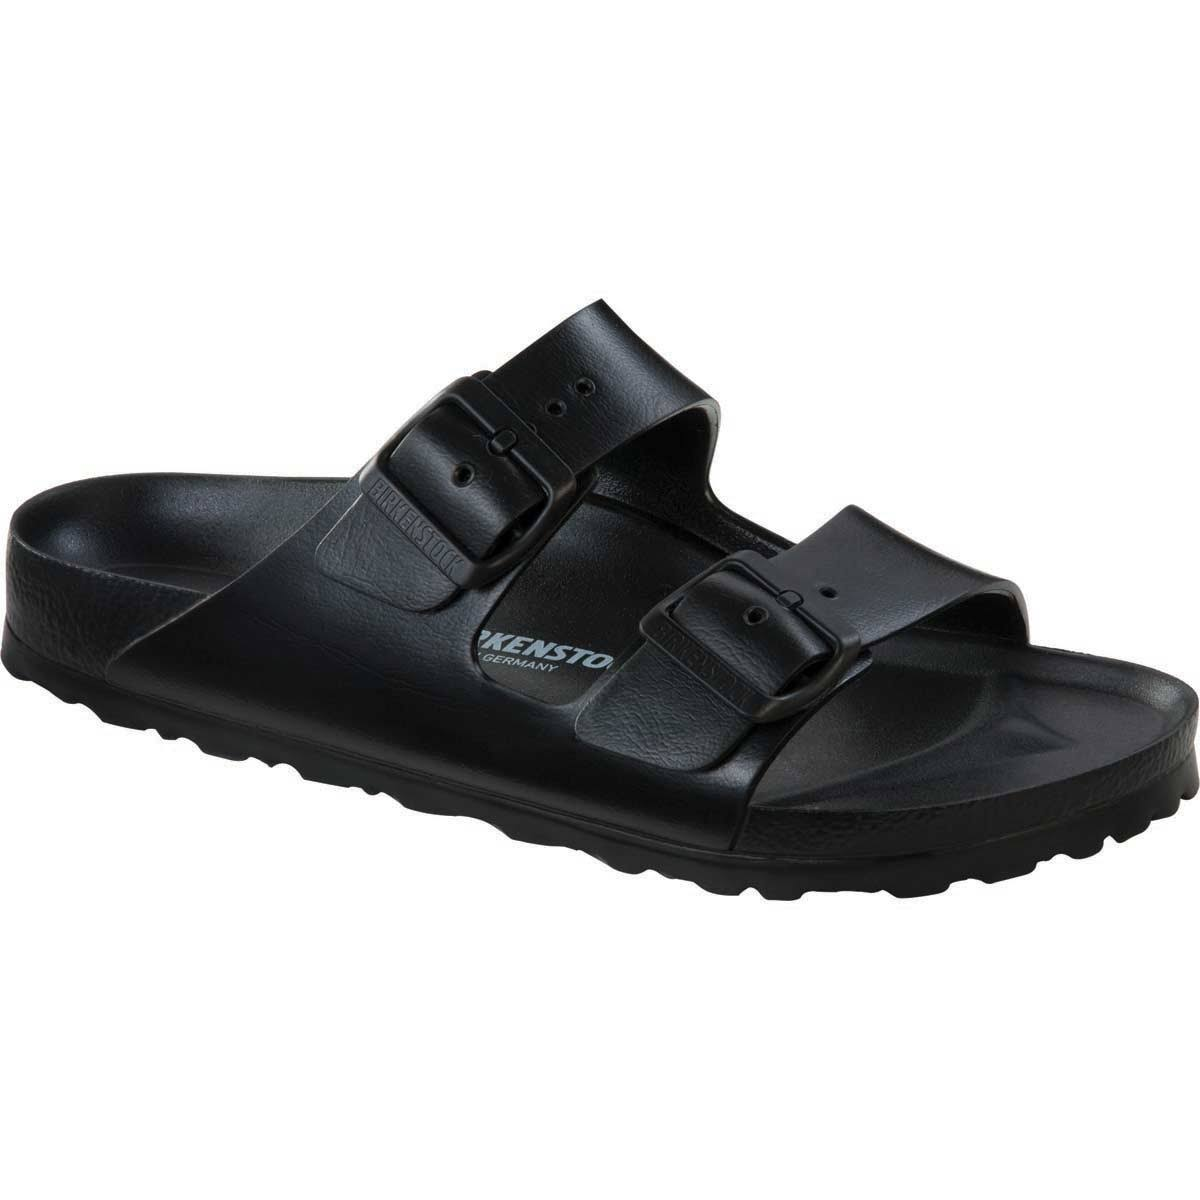 Birkenstock Unisex Arizona Eva Sandals - Black